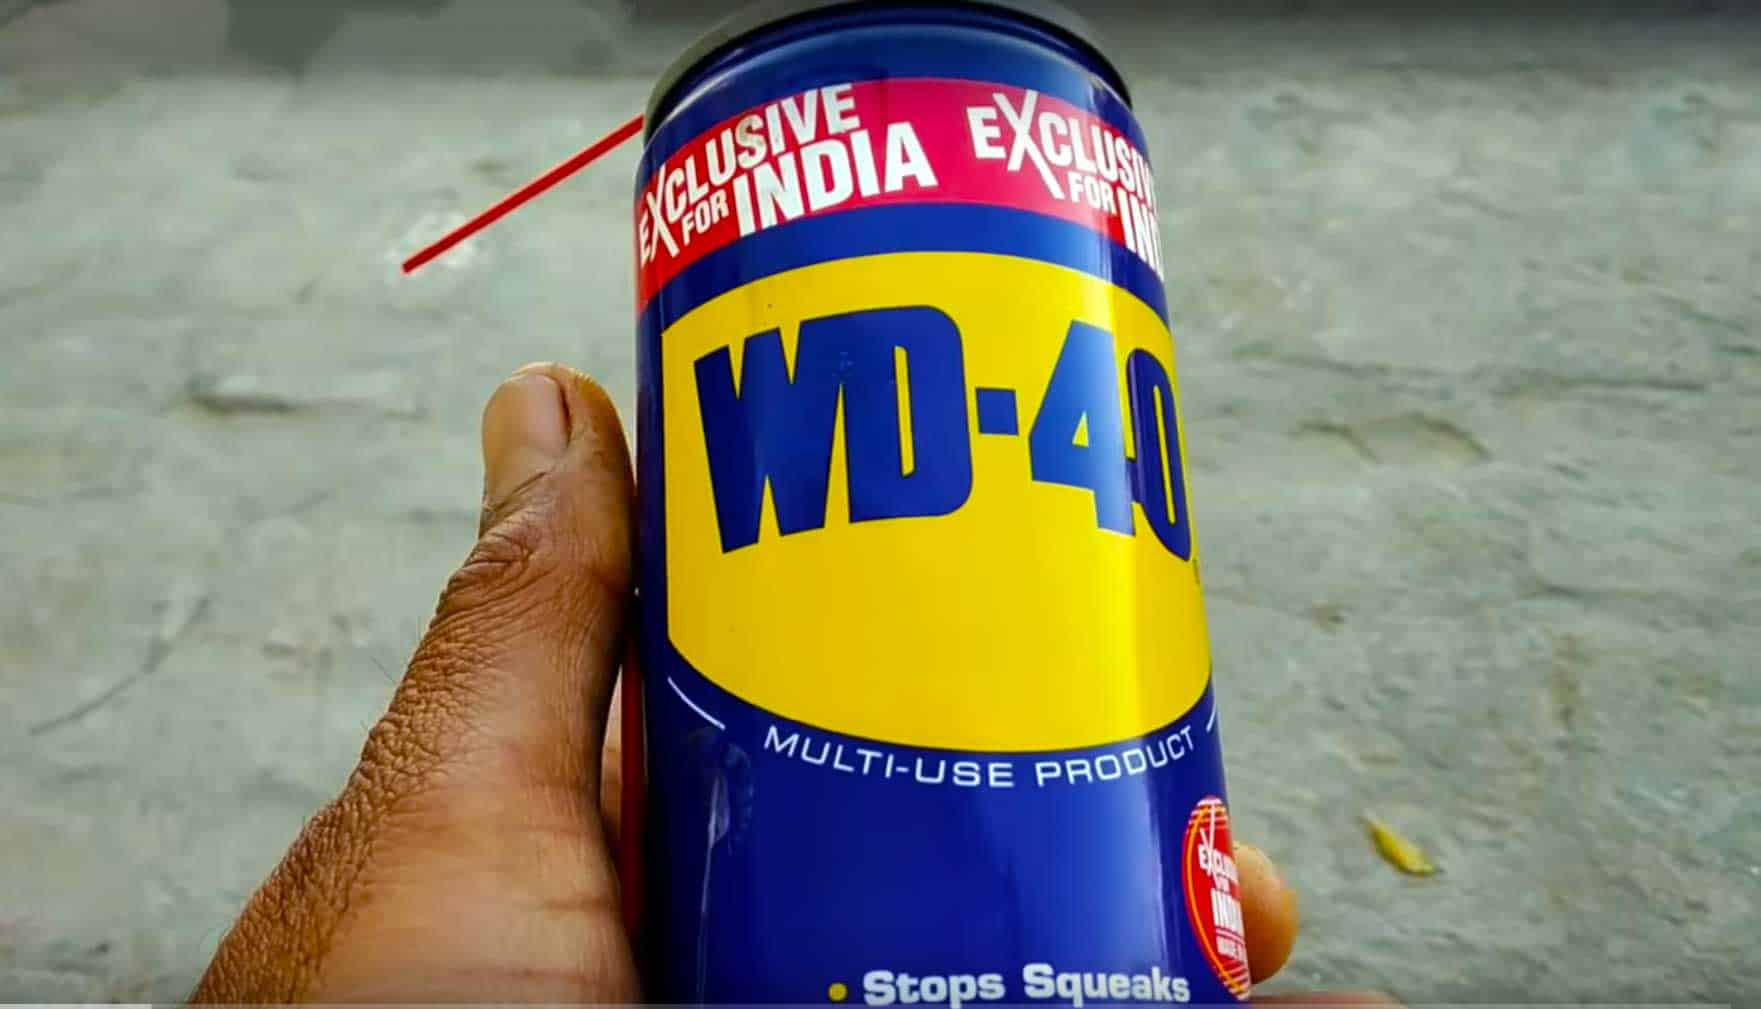 Removing Rust From Tools By Using Wd 40 As A Rust Remover